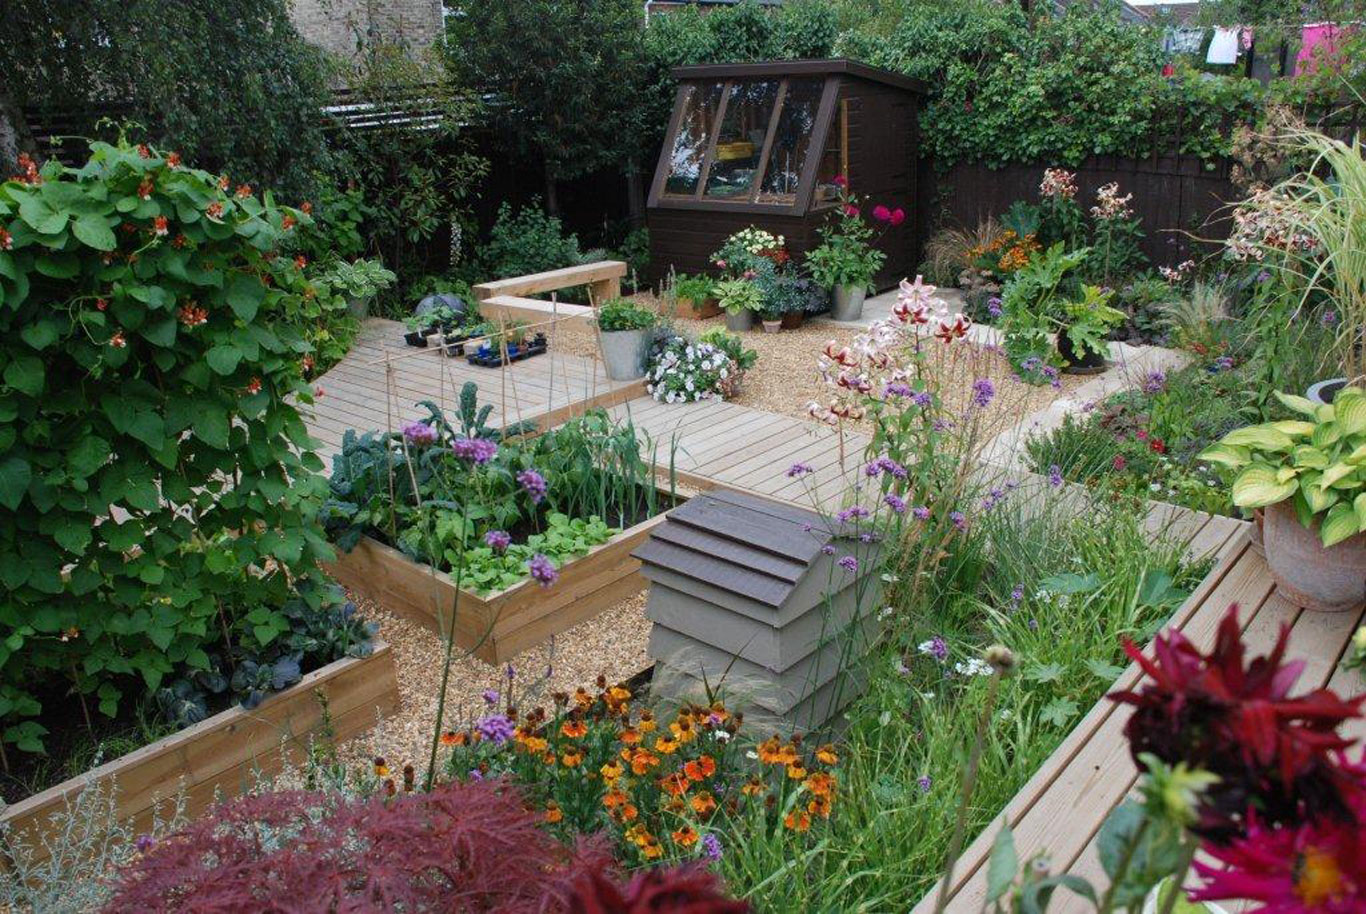 Garden landscapers in essex and london west essex landscapes for How to landscape a garden